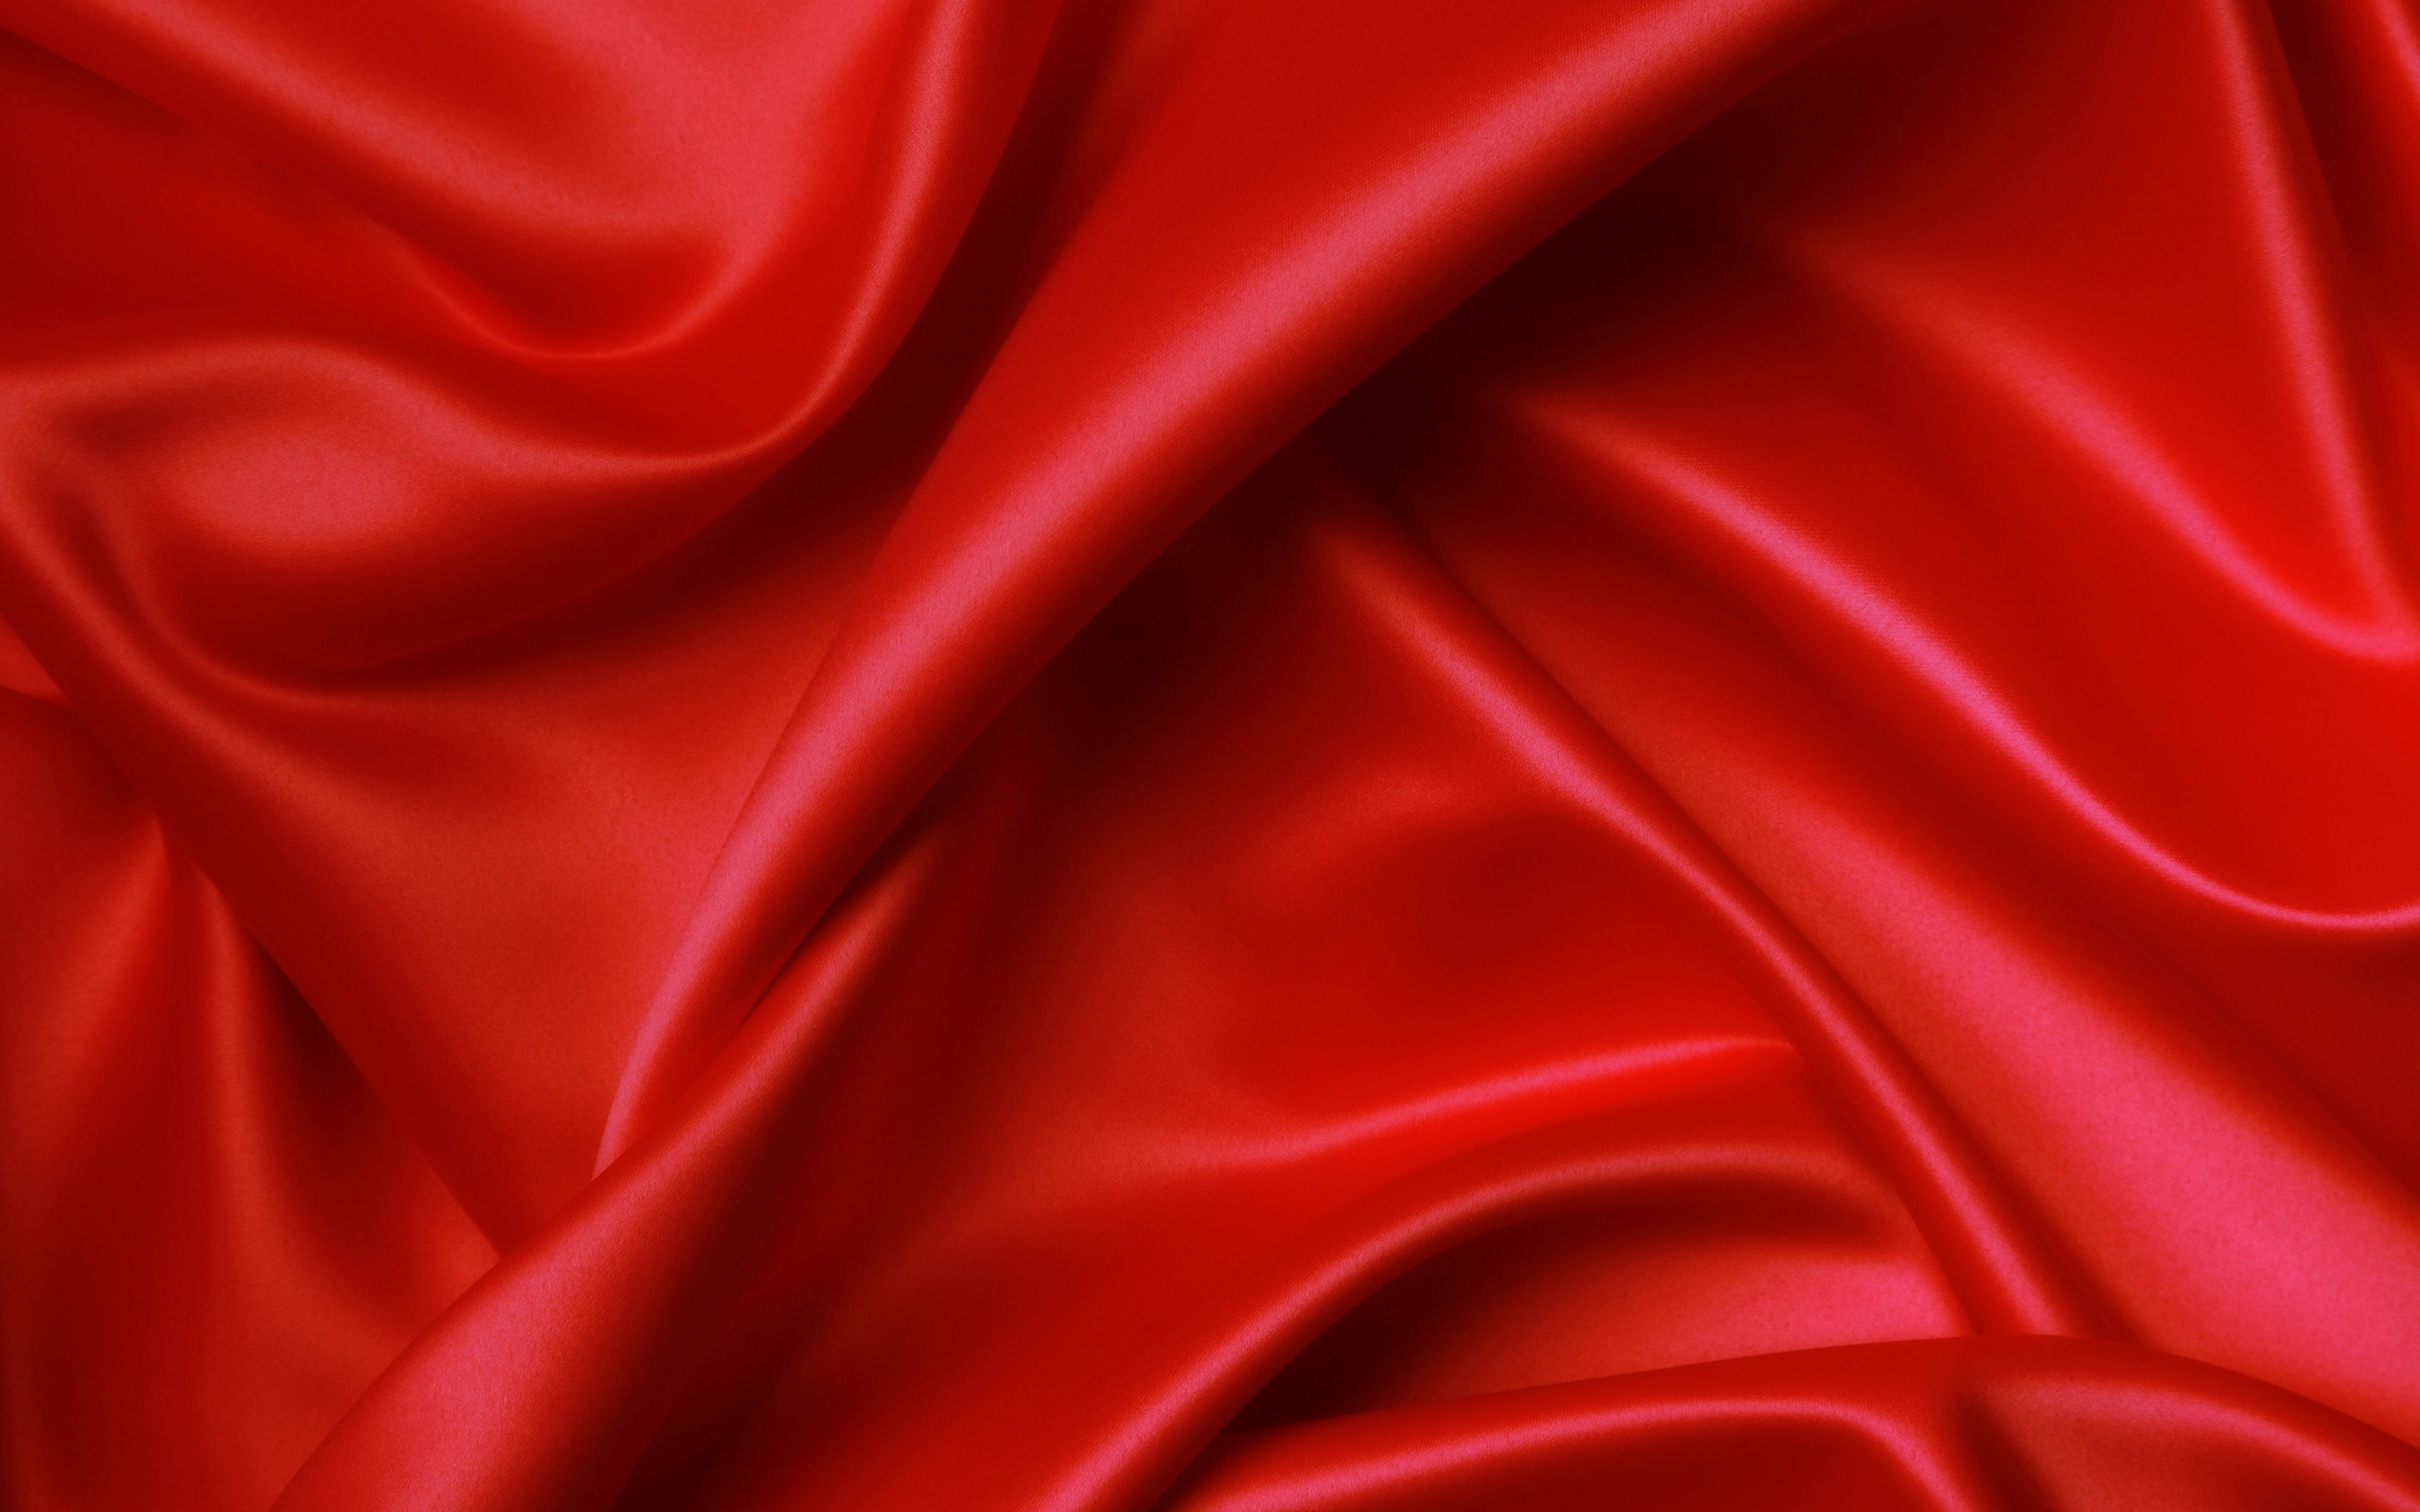 Red Satin Wallpaper (47+ pictures)